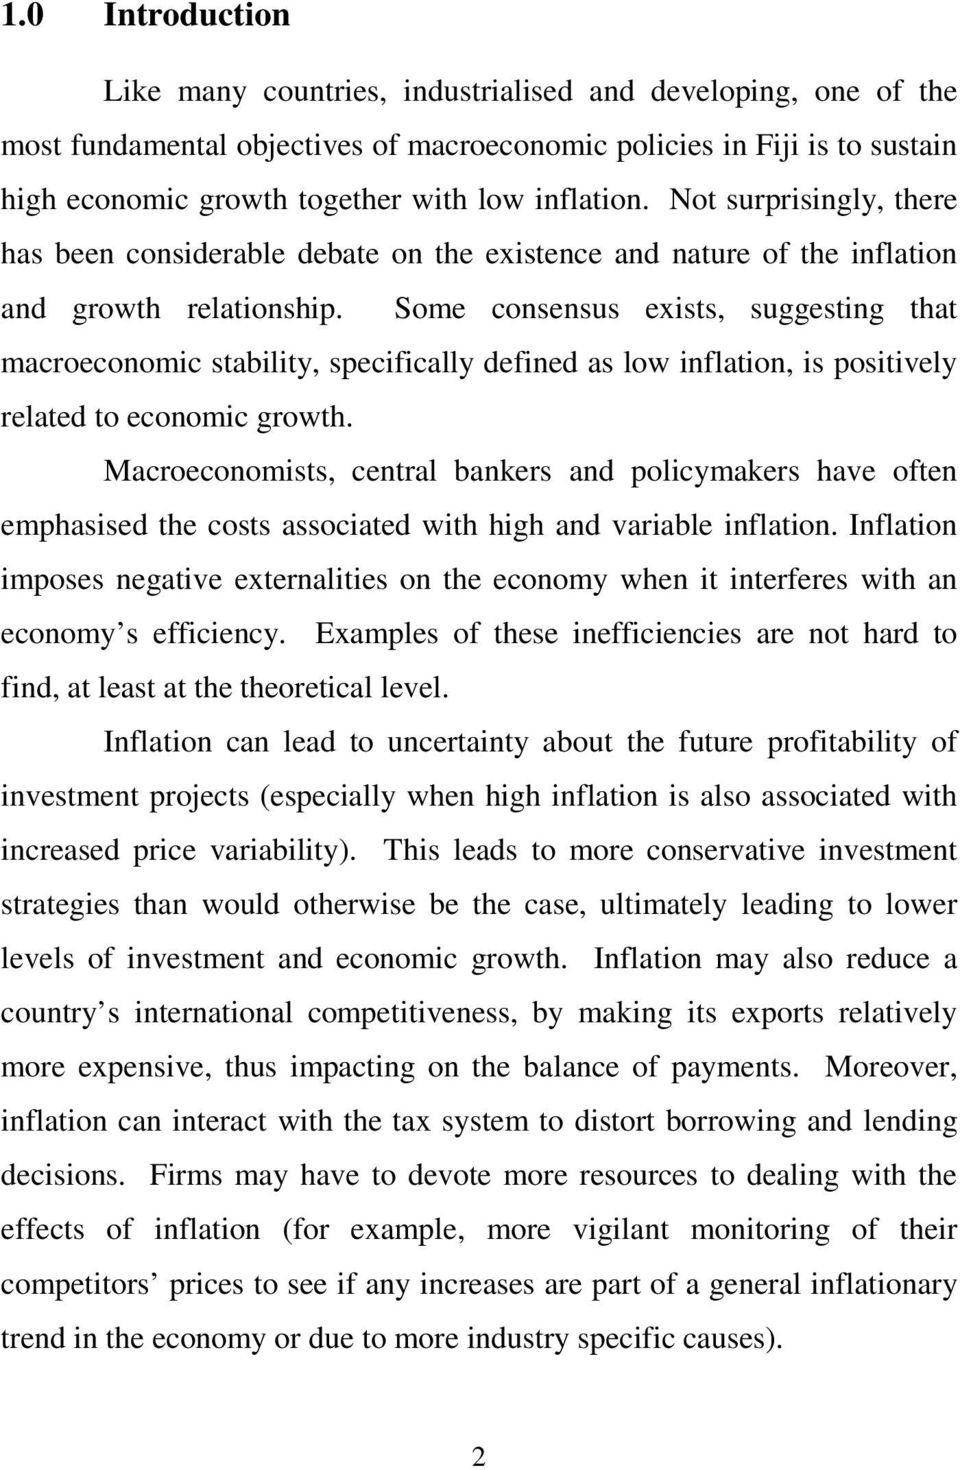 Some consensus exists, suggesting that macroeconomic stability, specifically defined as low inflation, is positively related to economic growth.